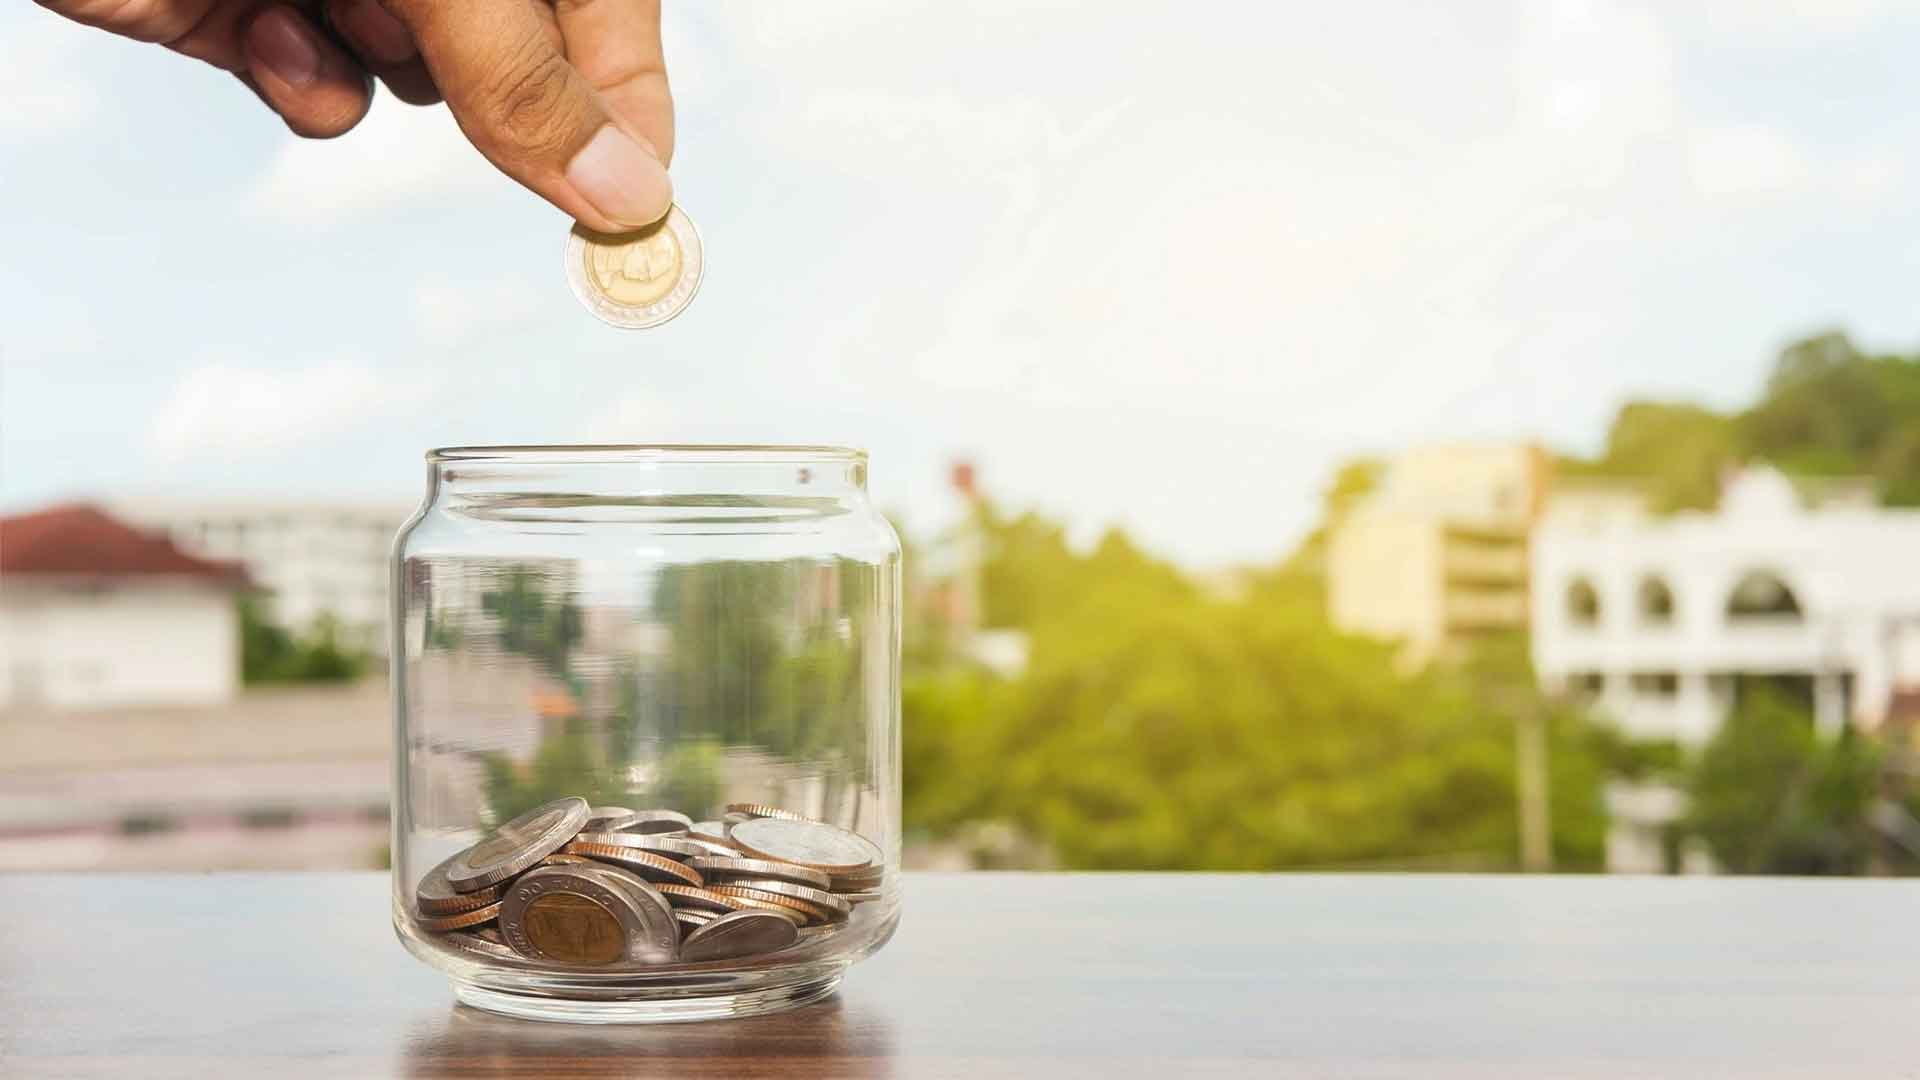 Wealth Creation: How Much is $30 Per Week Worth?